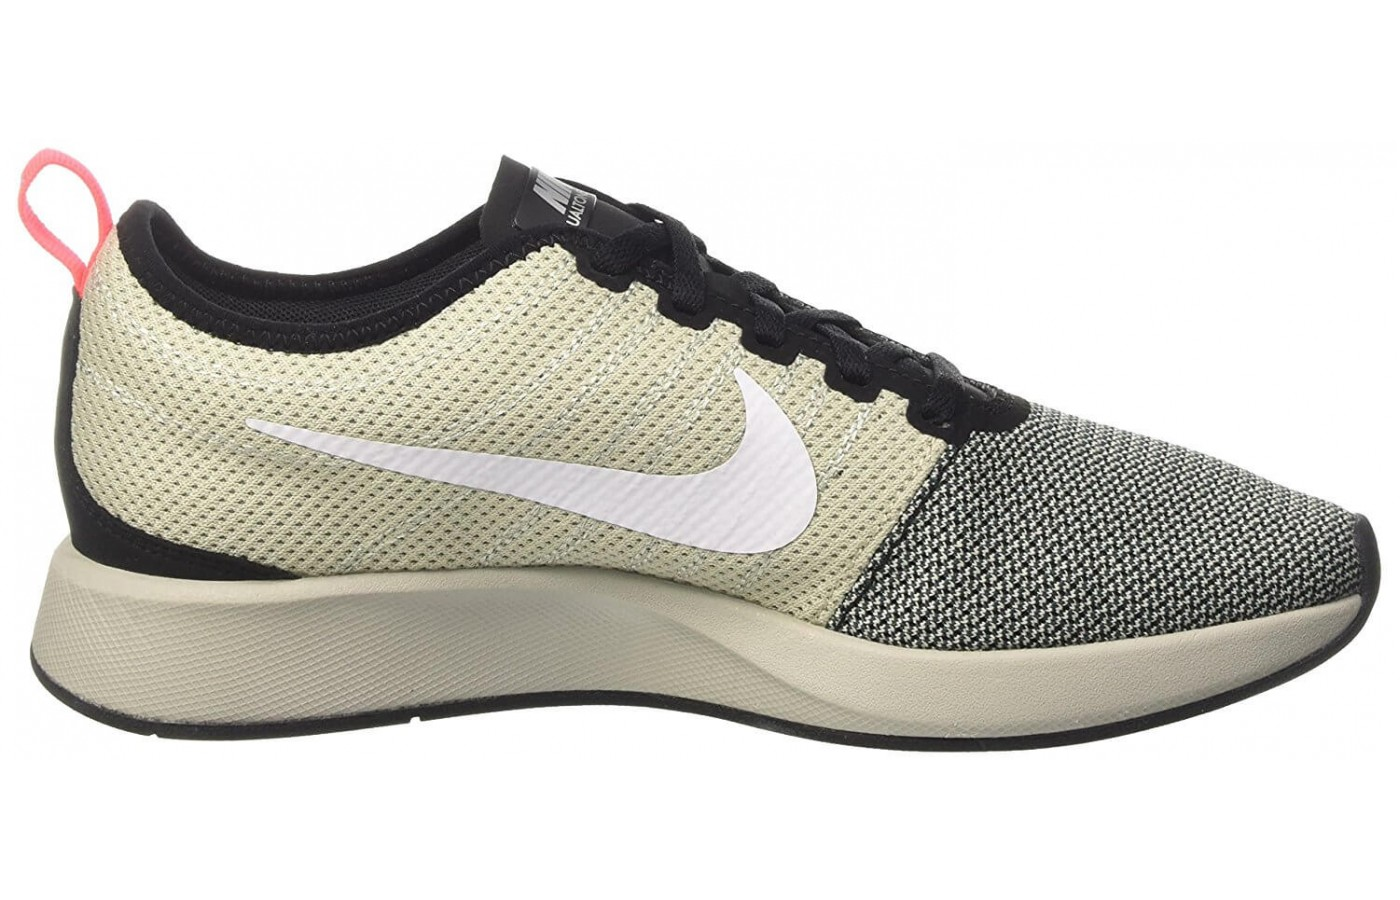 Nike Dualtone Racer Review - To Buy or Not in Apr 2019  1c9ef69da